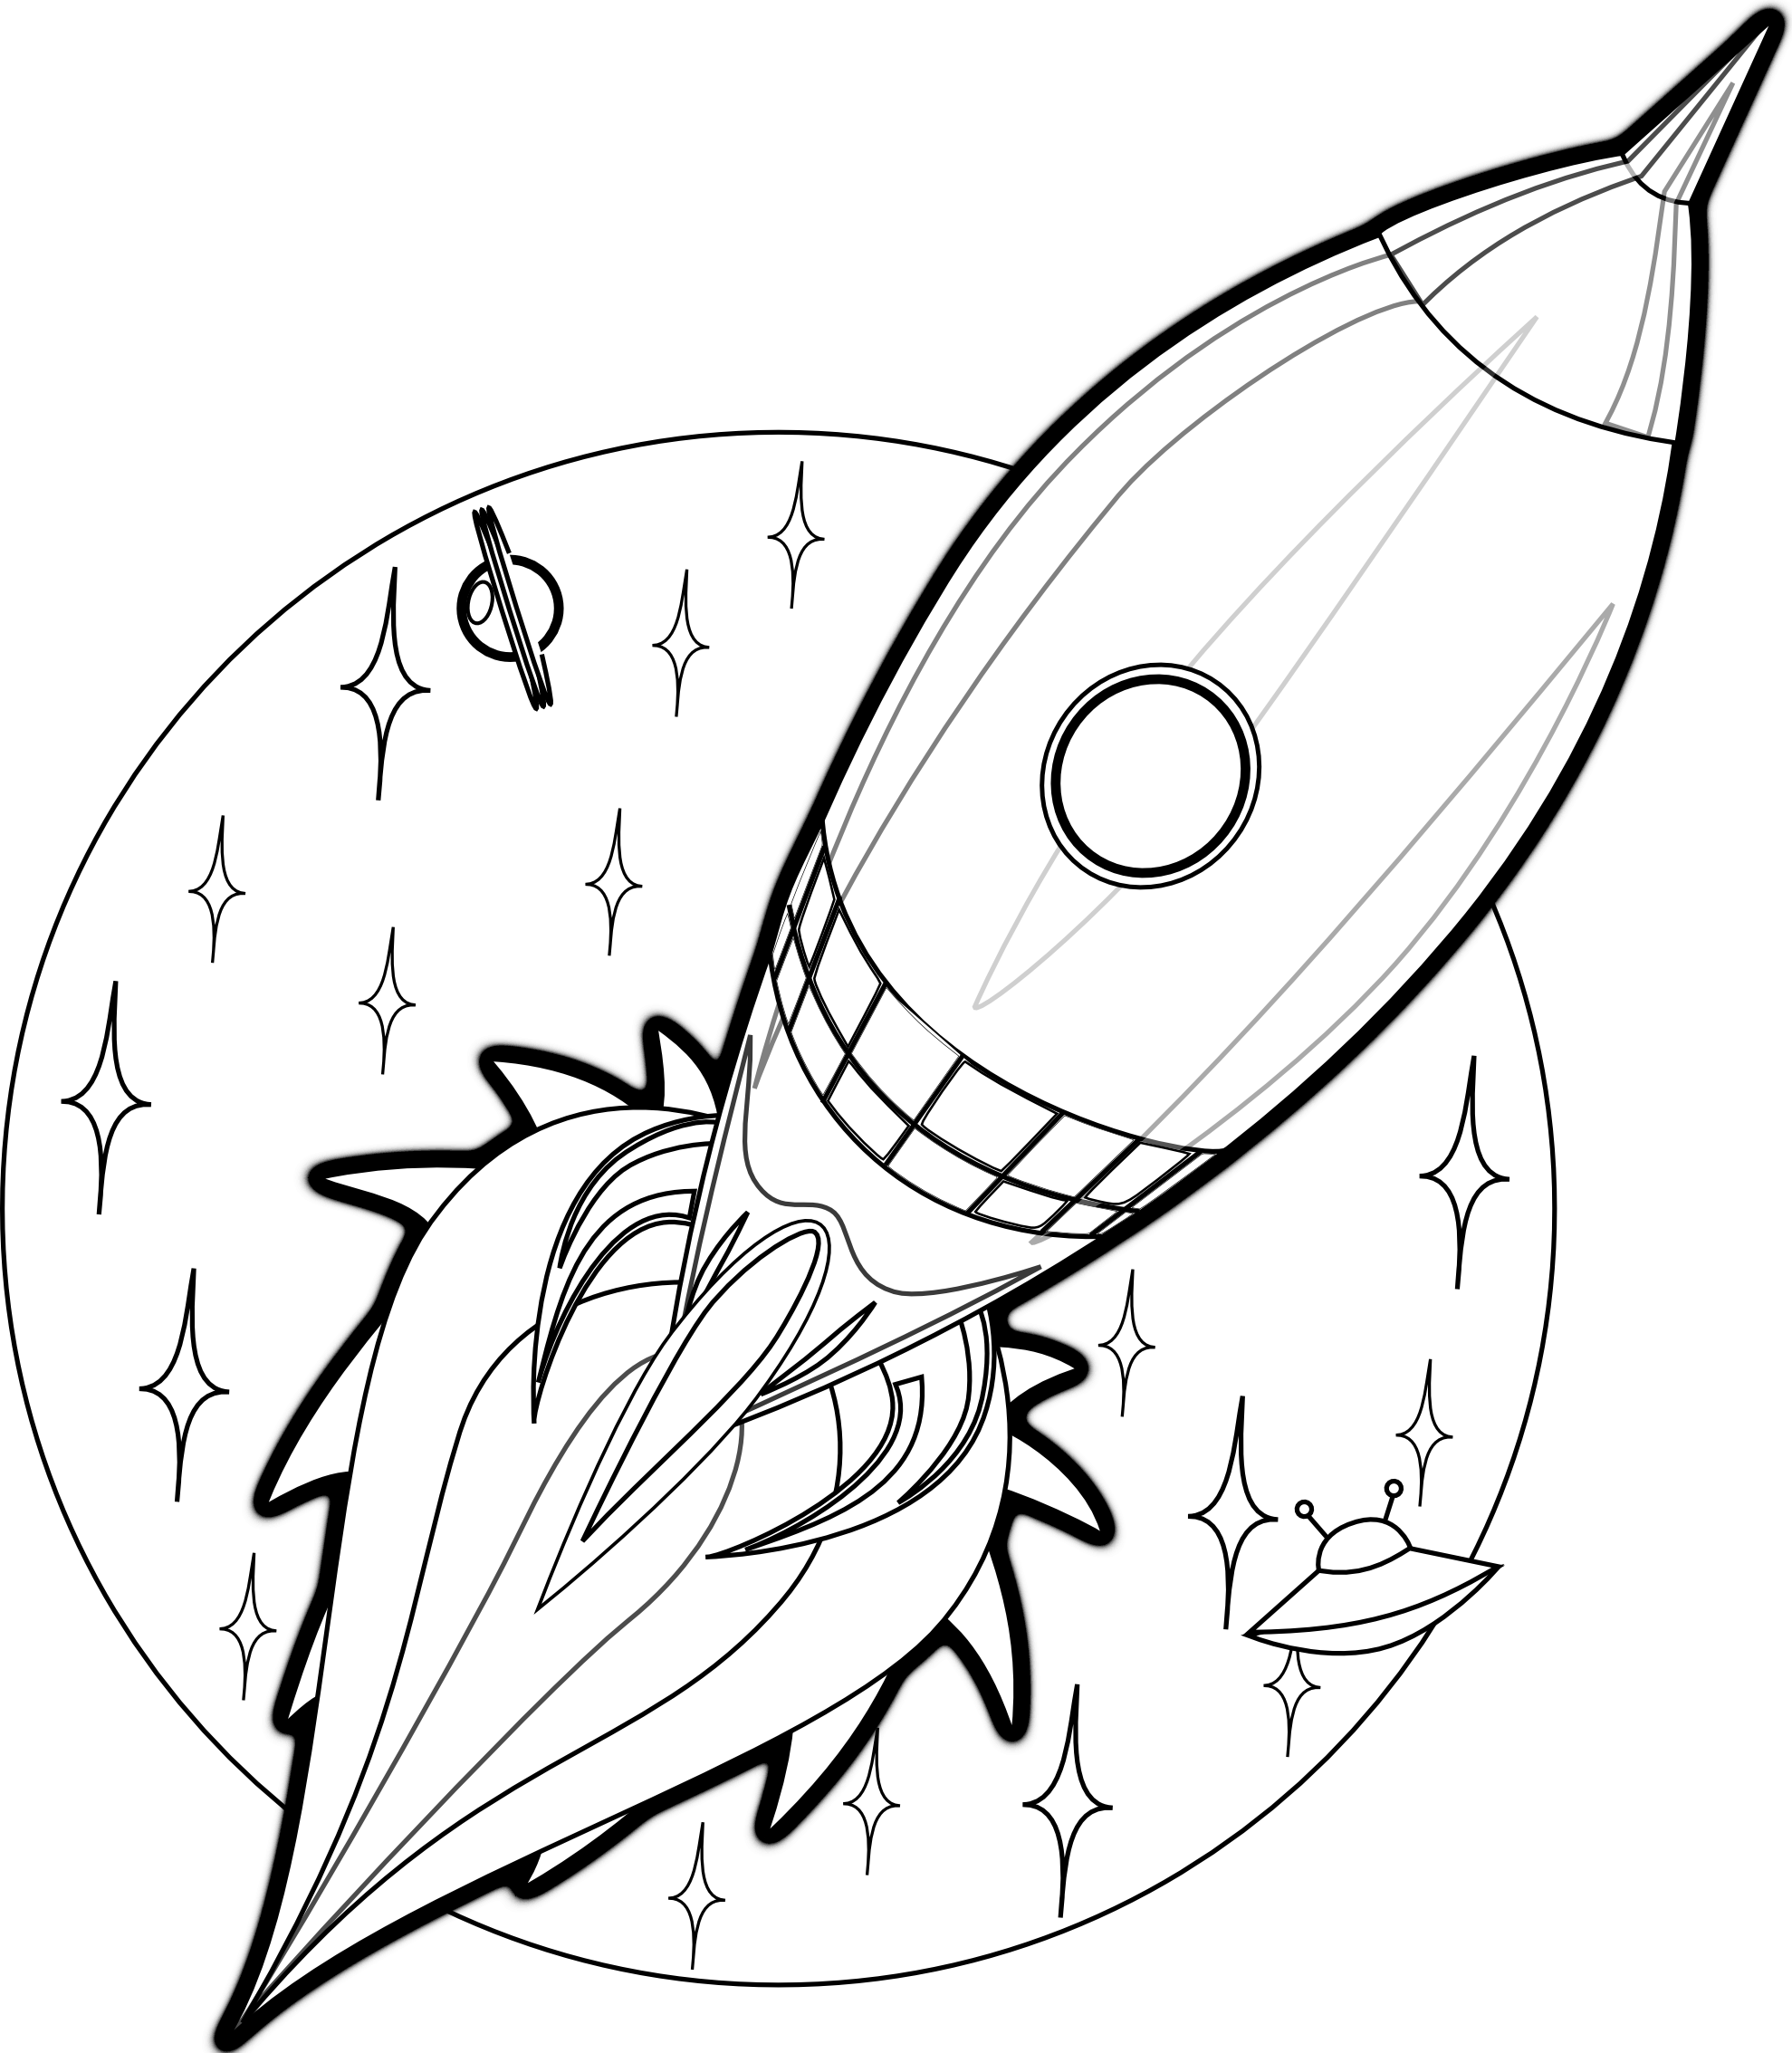 Free Printable Rocket Ship Coloring